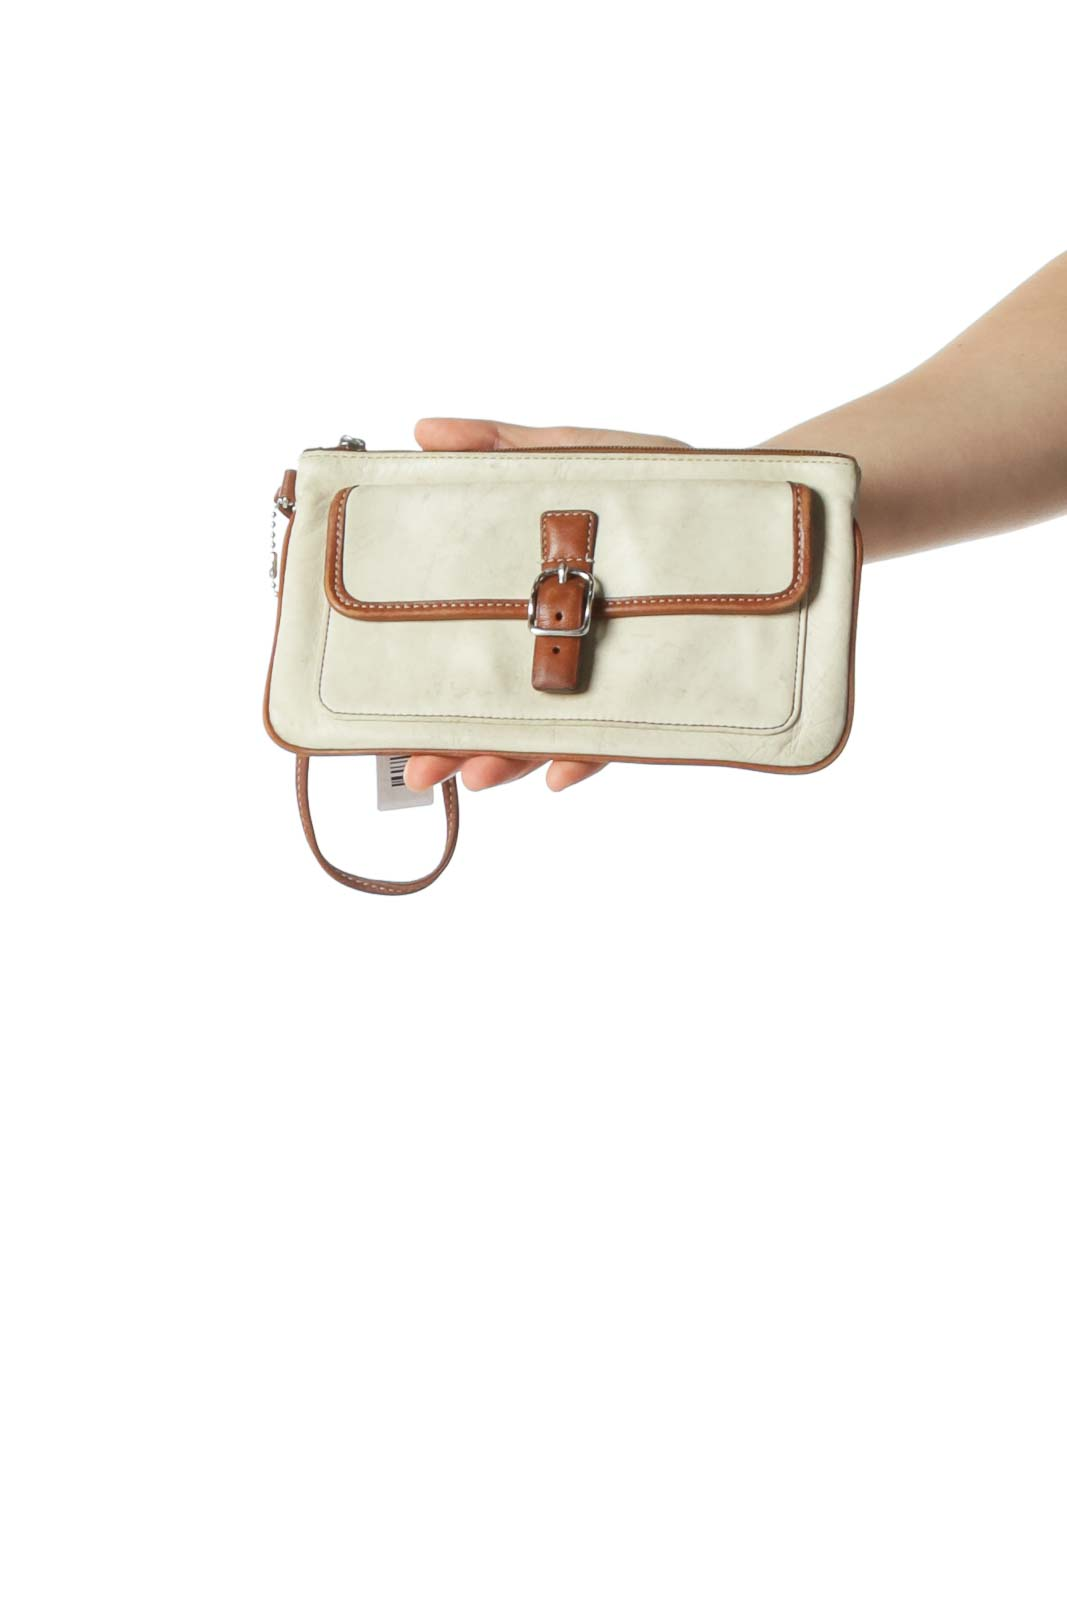 Cream Wristlet Clutch with Brown Lining